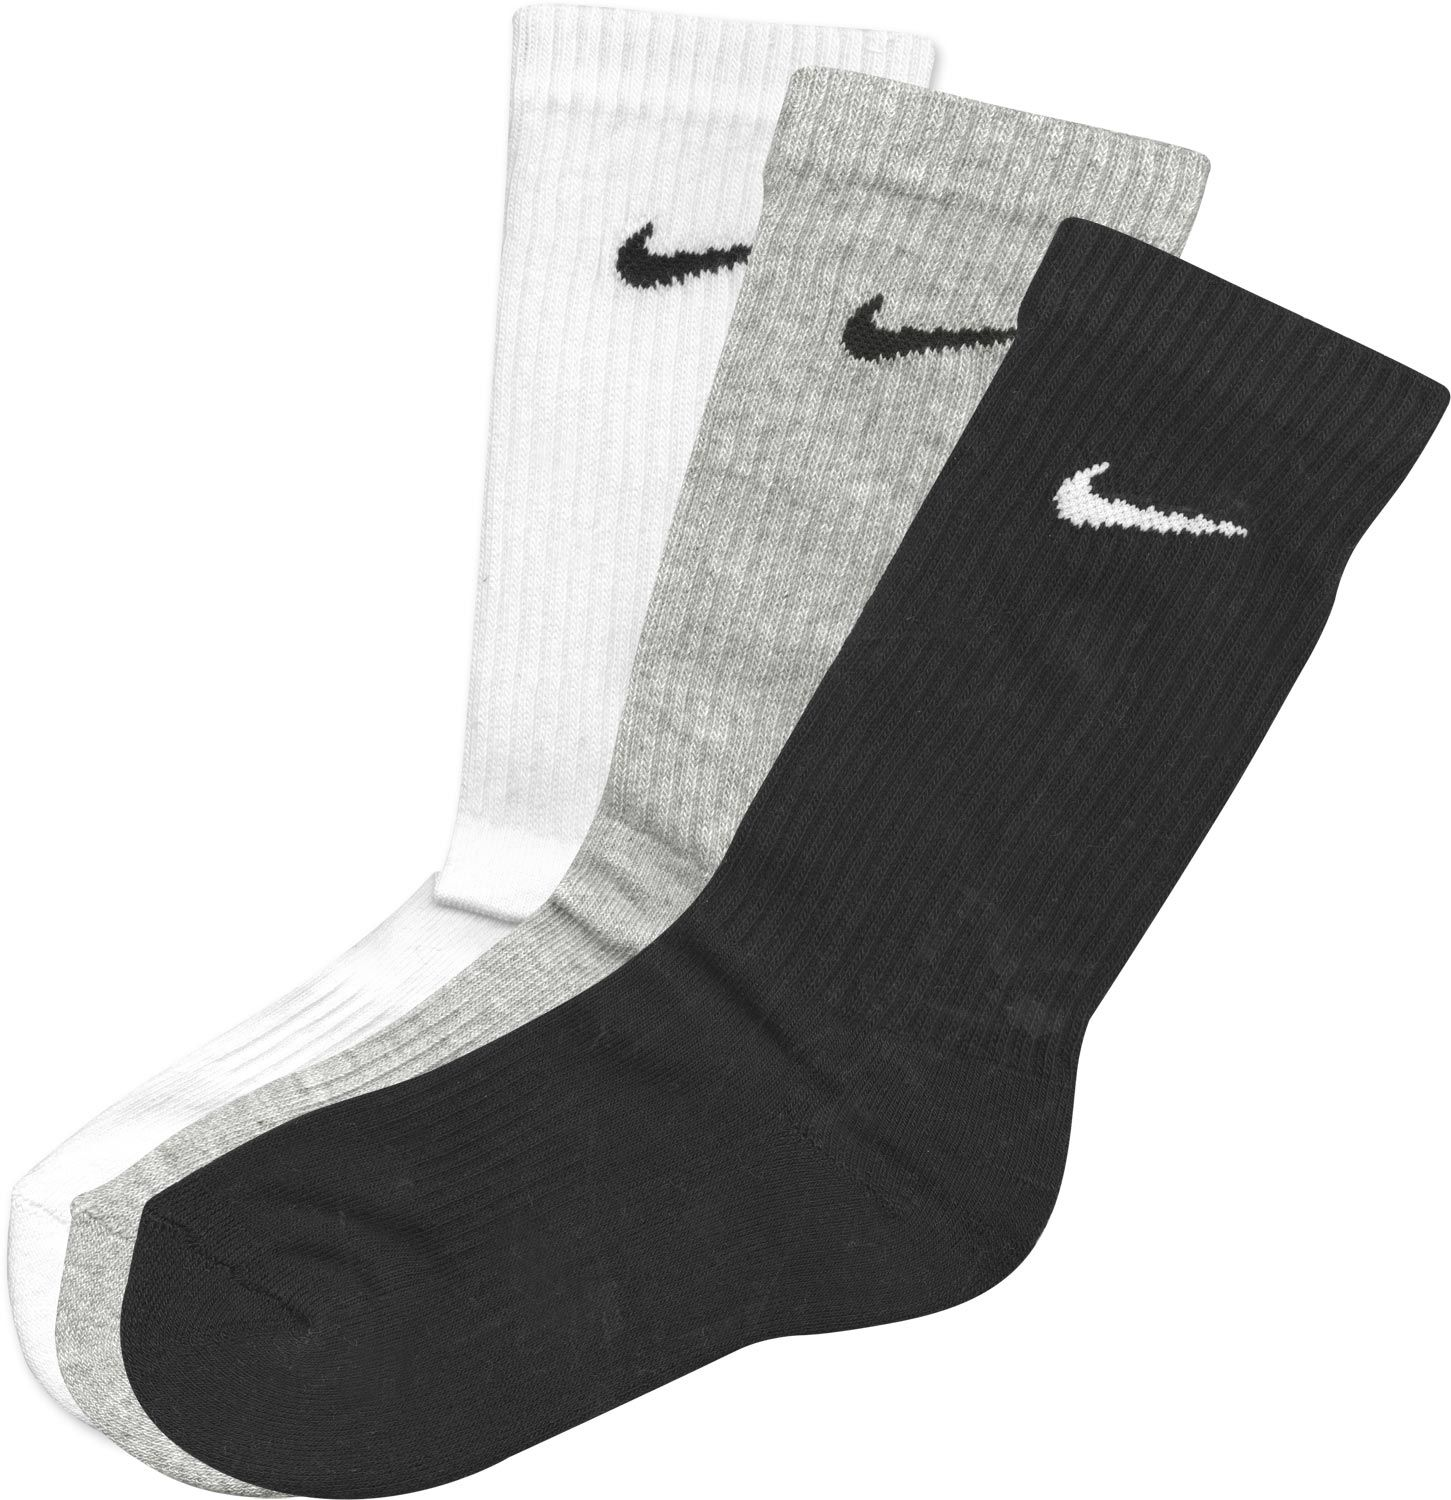 Nike Socks Black Nike Socks Nike Socks Outfit Sock Outfits